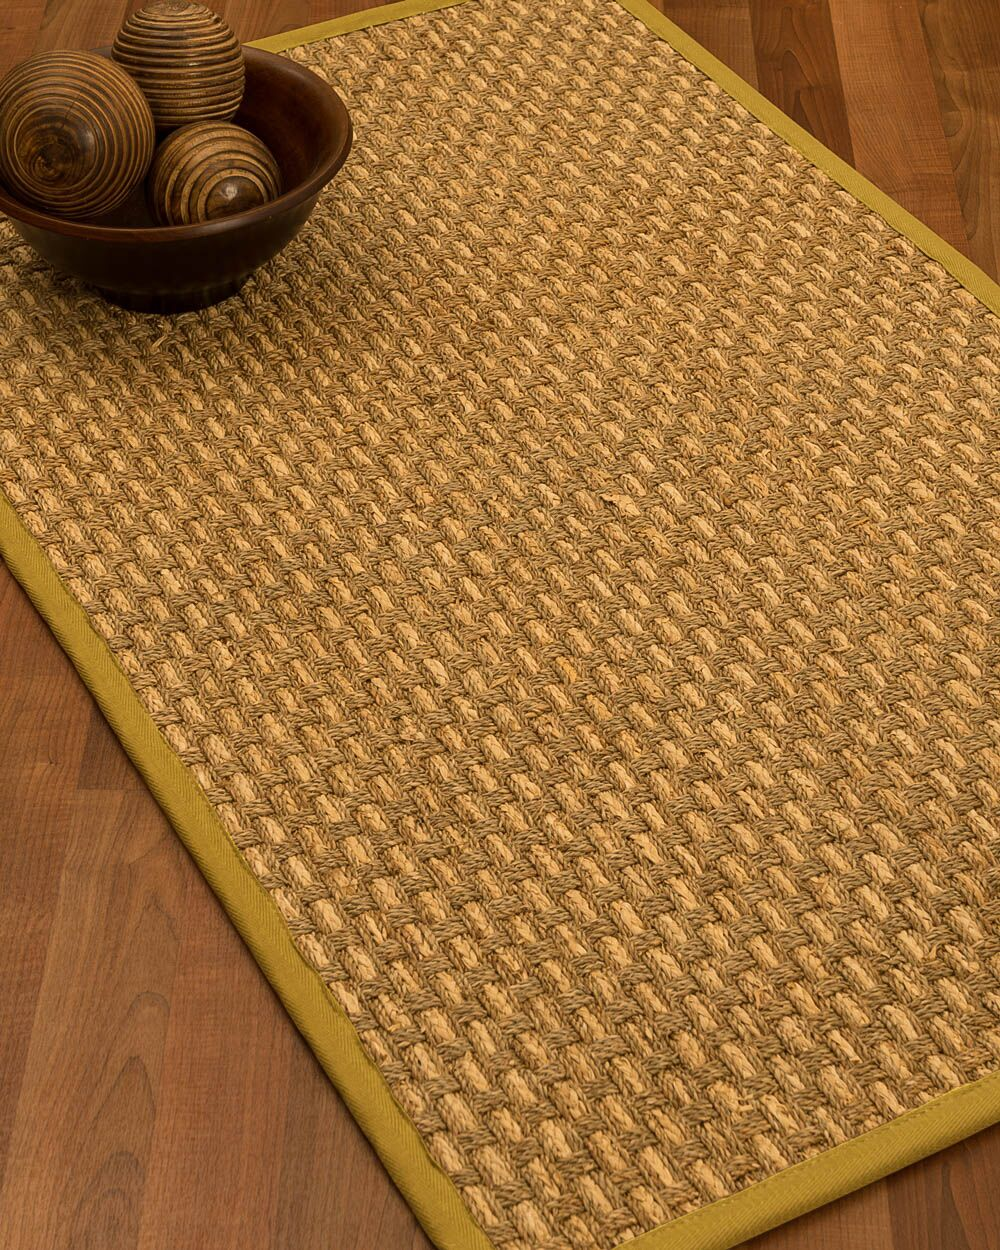 Castiglia Border Hand-Woven Beige/Tan Area Rug Rug Pad Included: No, Rug Size: Rectangle 3' x 5'